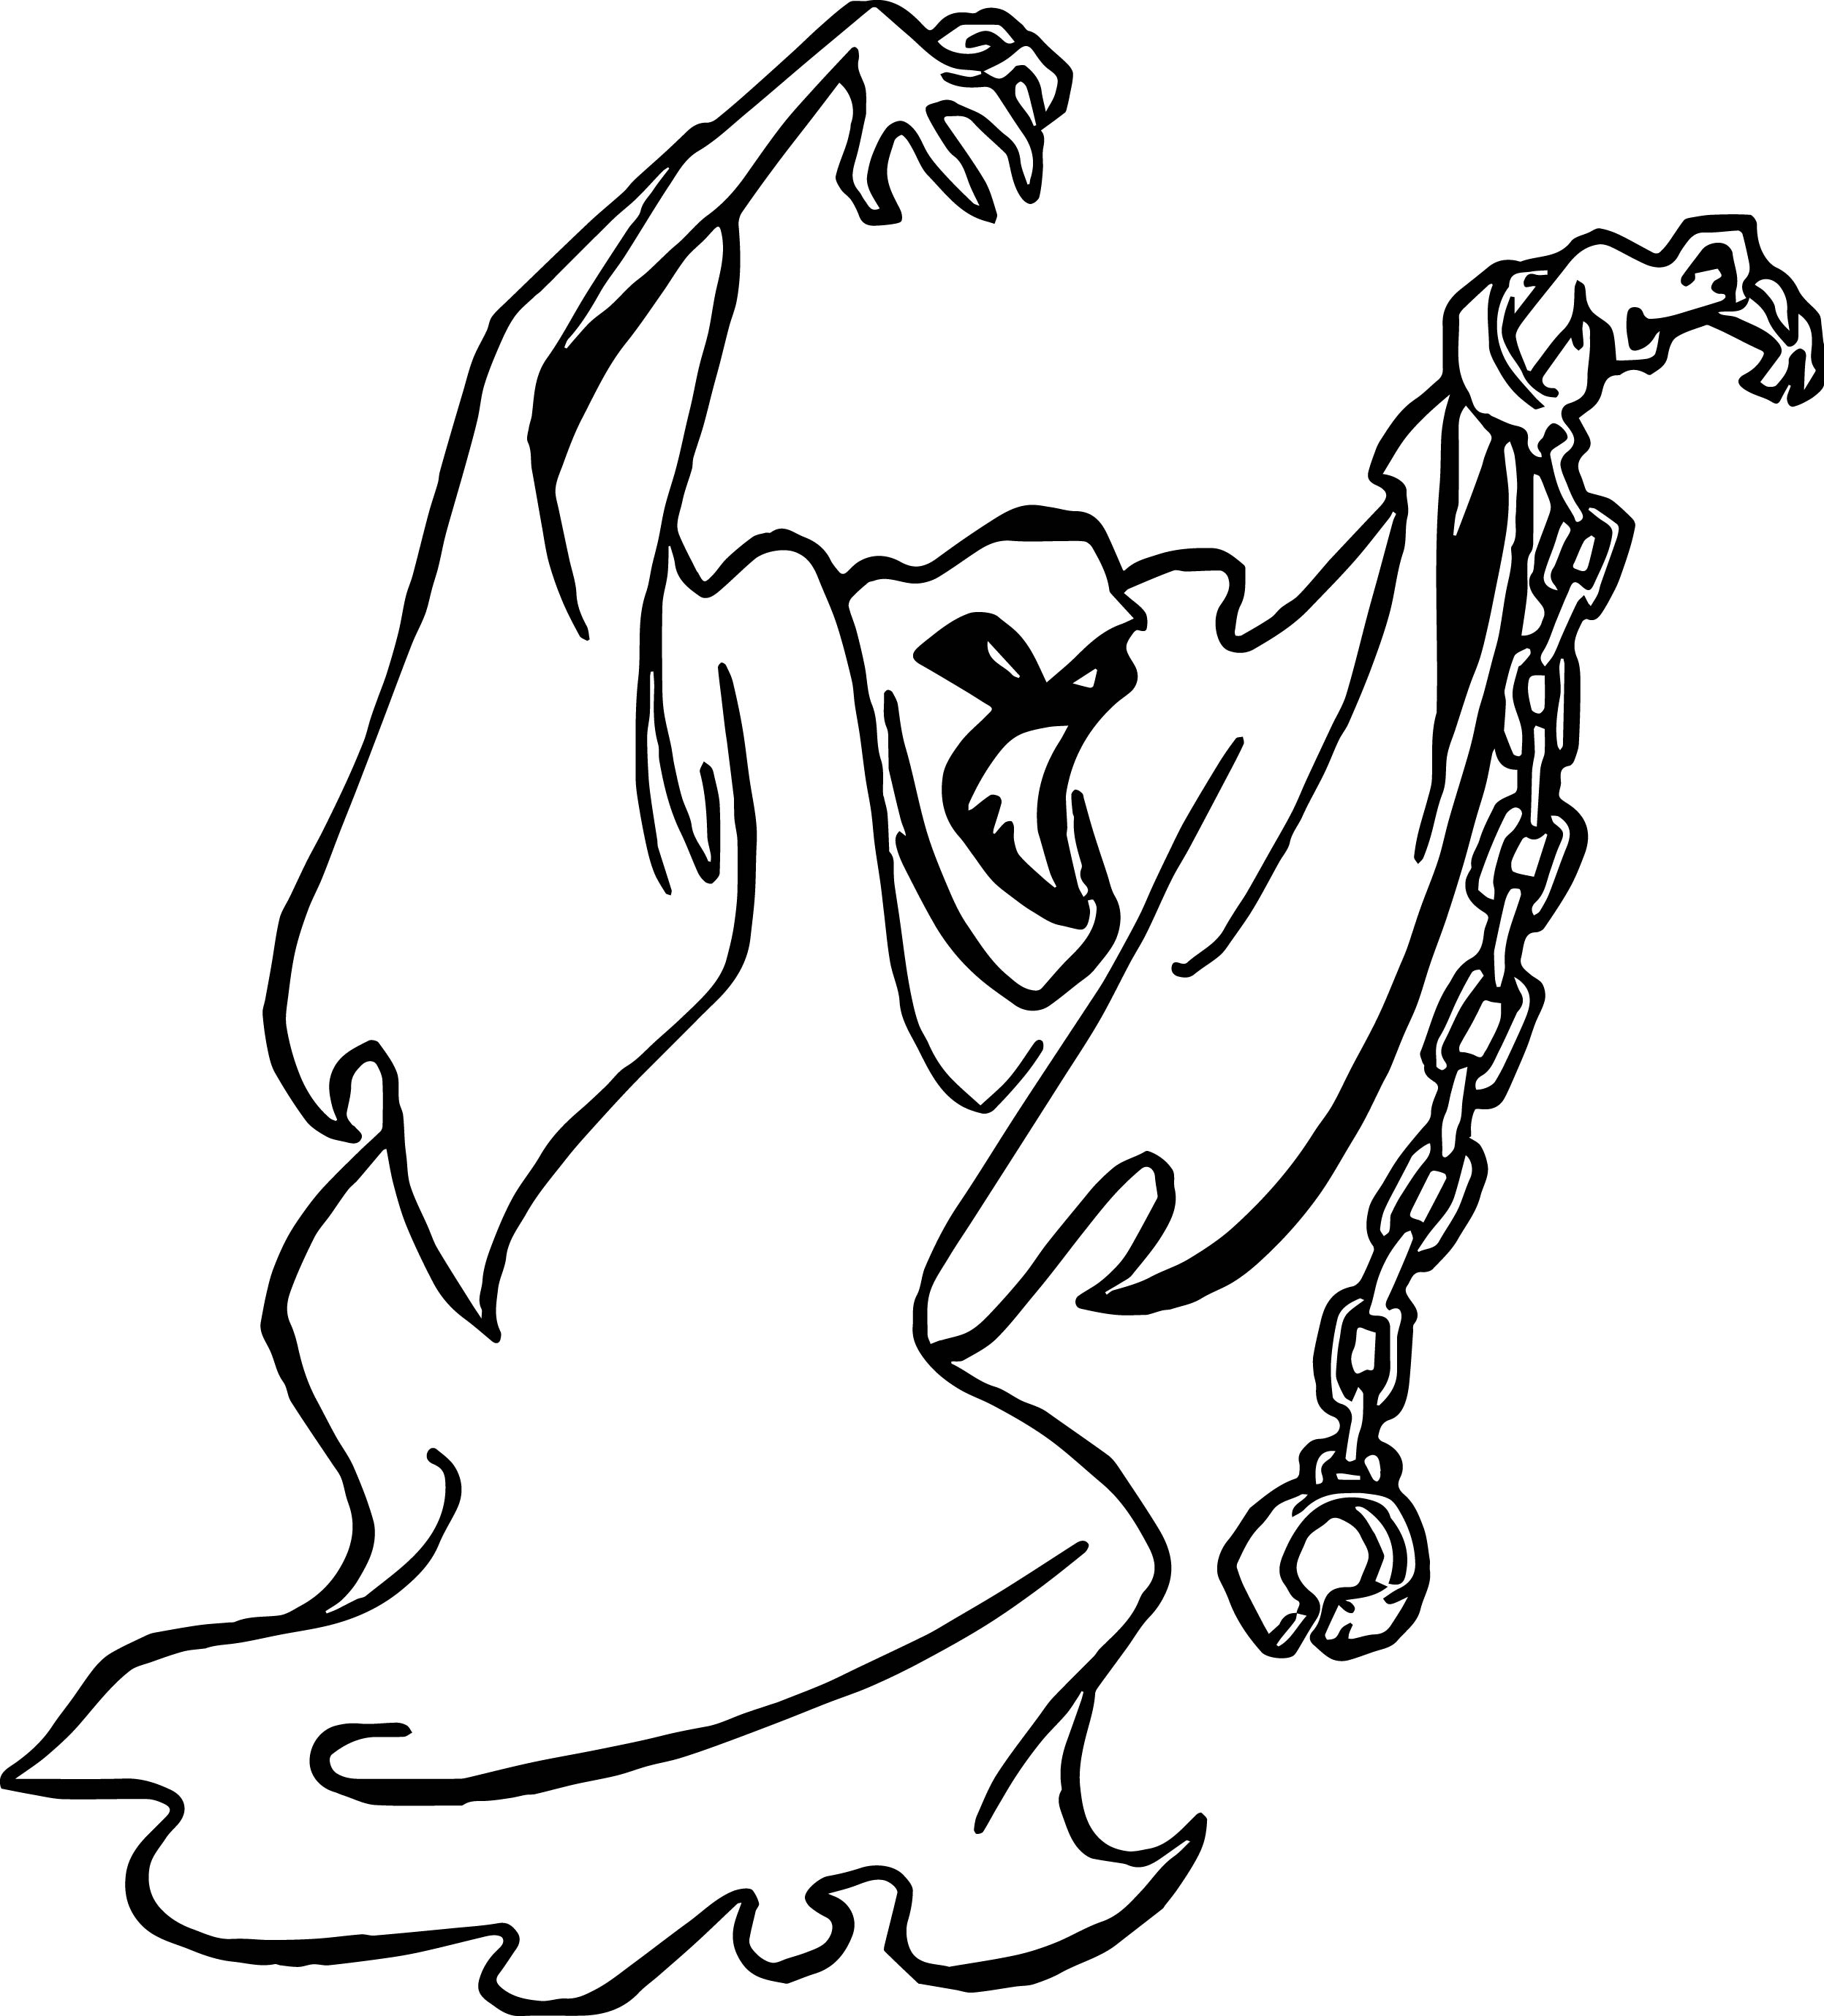 scooby doo characters coloring pages scooby doo characters coloring pages at getdrawings free pages scooby characters coloring doo